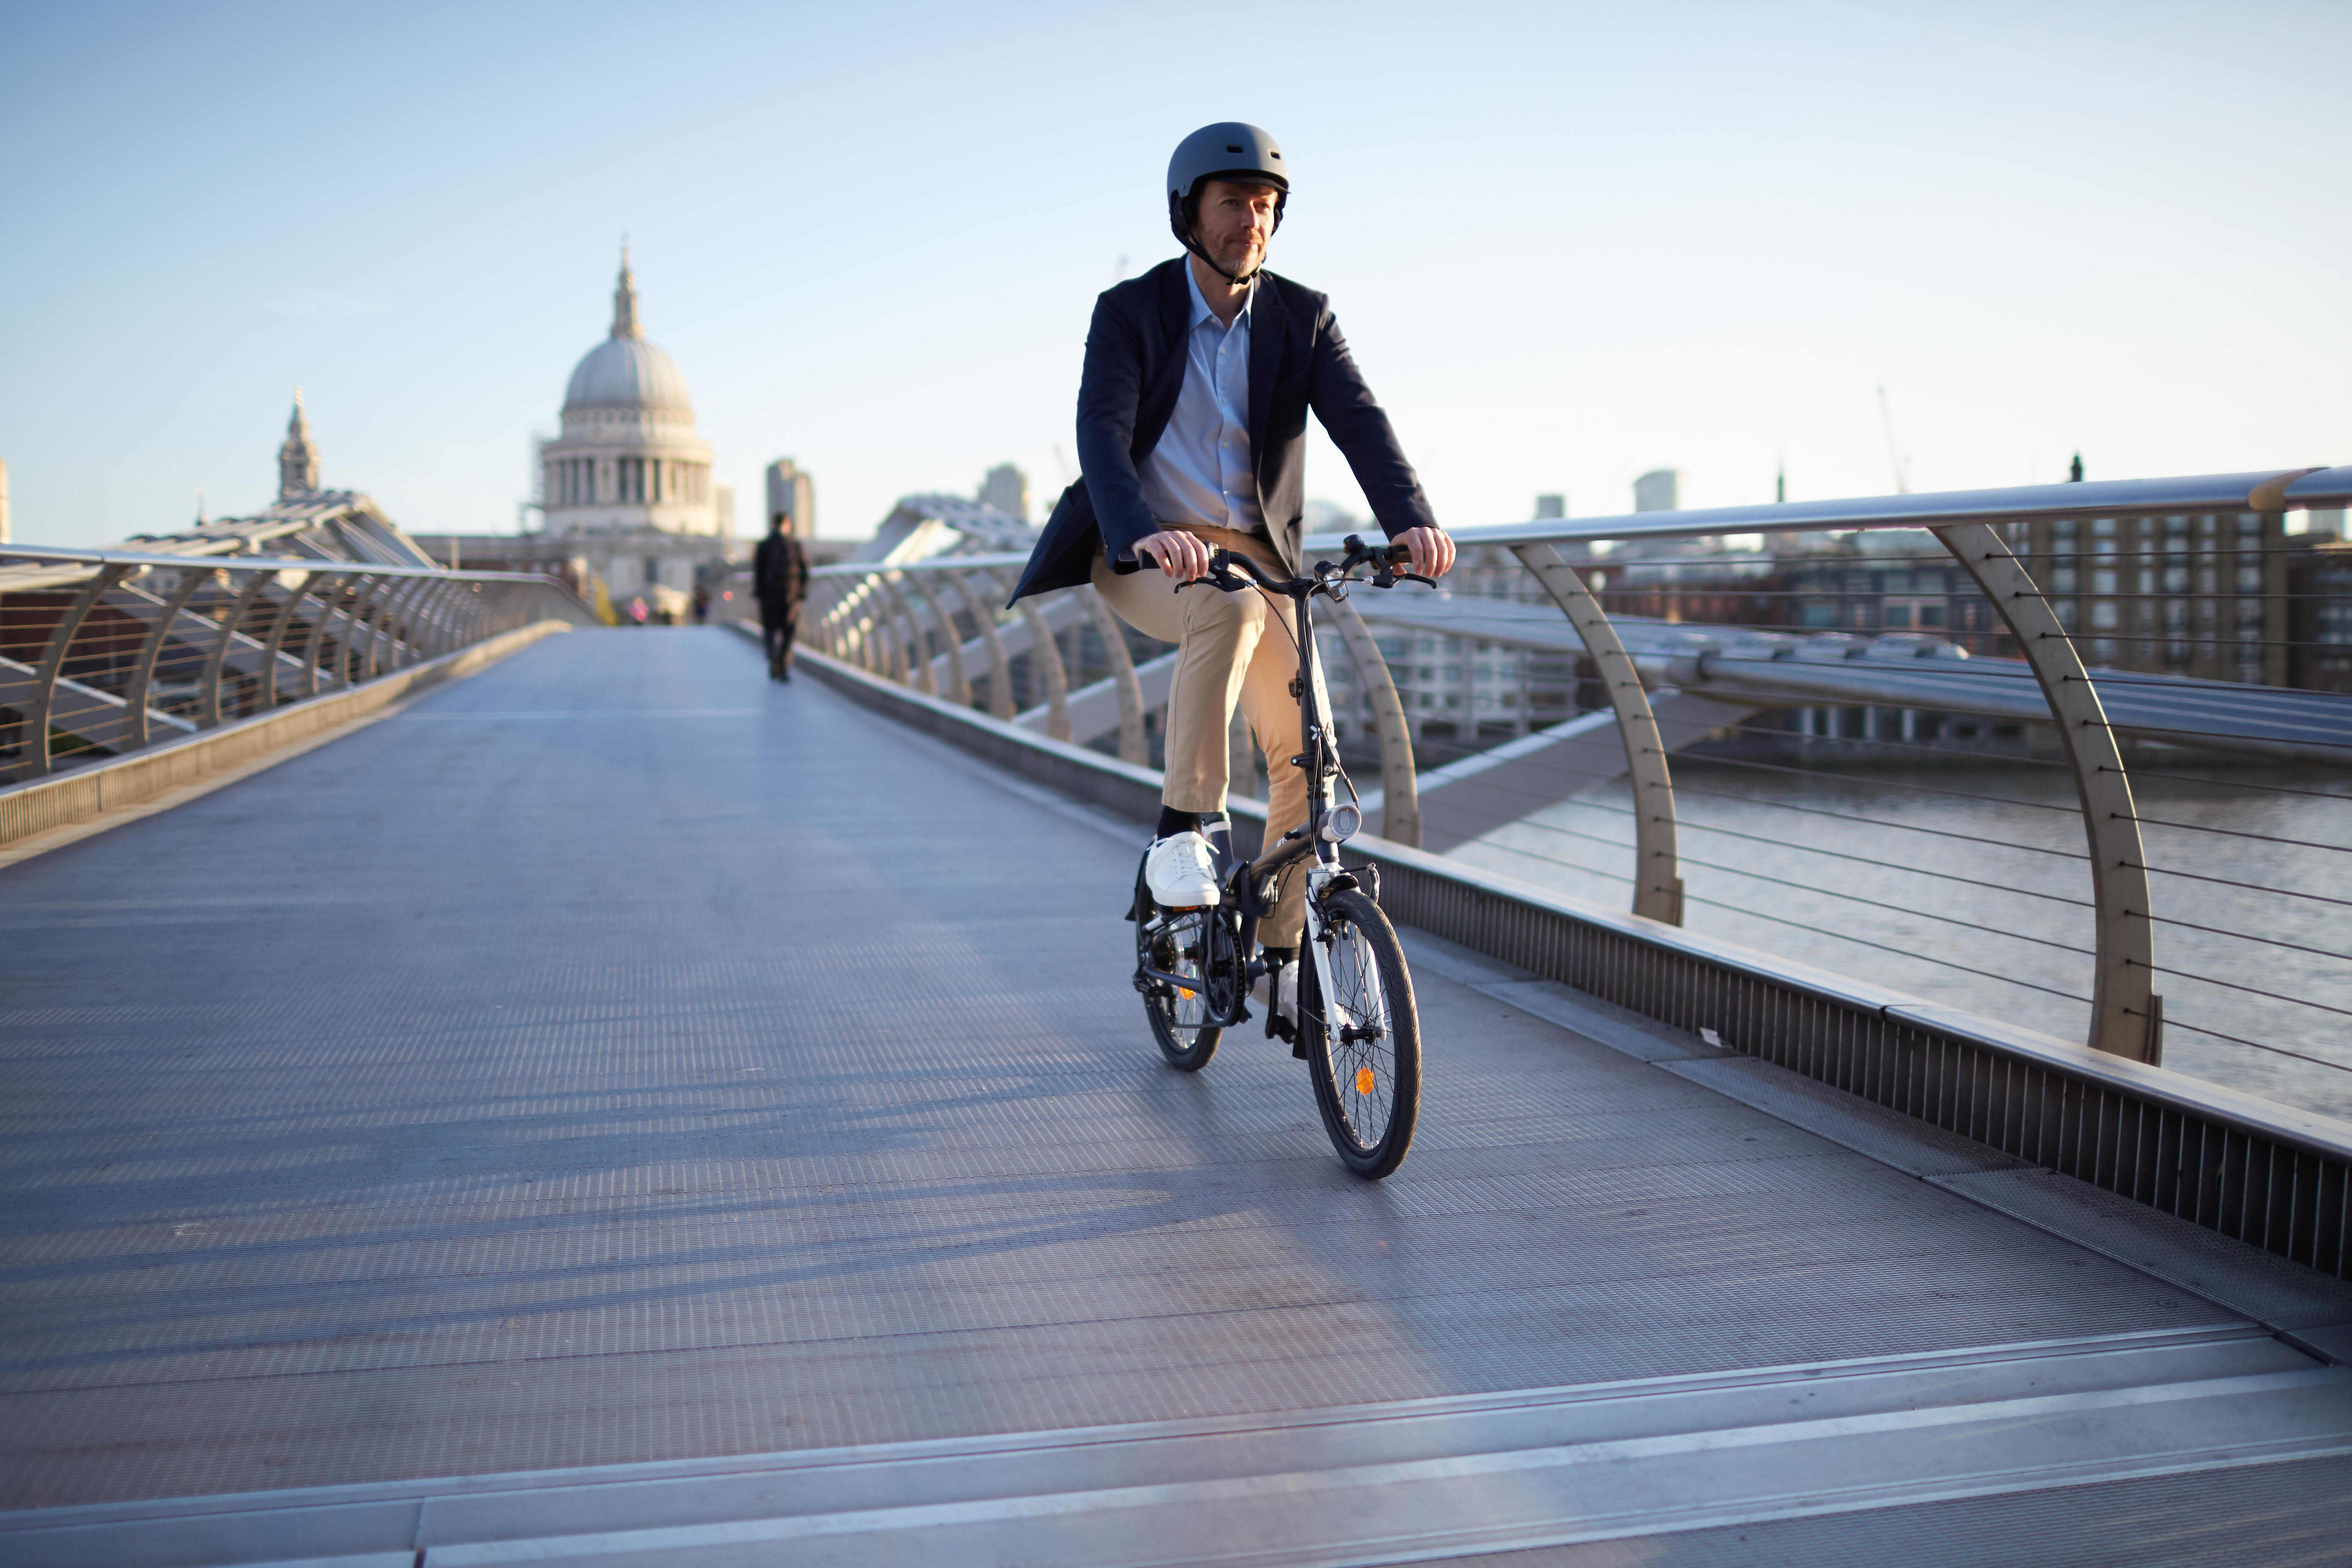 Cycling To Work In London: 5 Things You'll Notice In A Typical Week